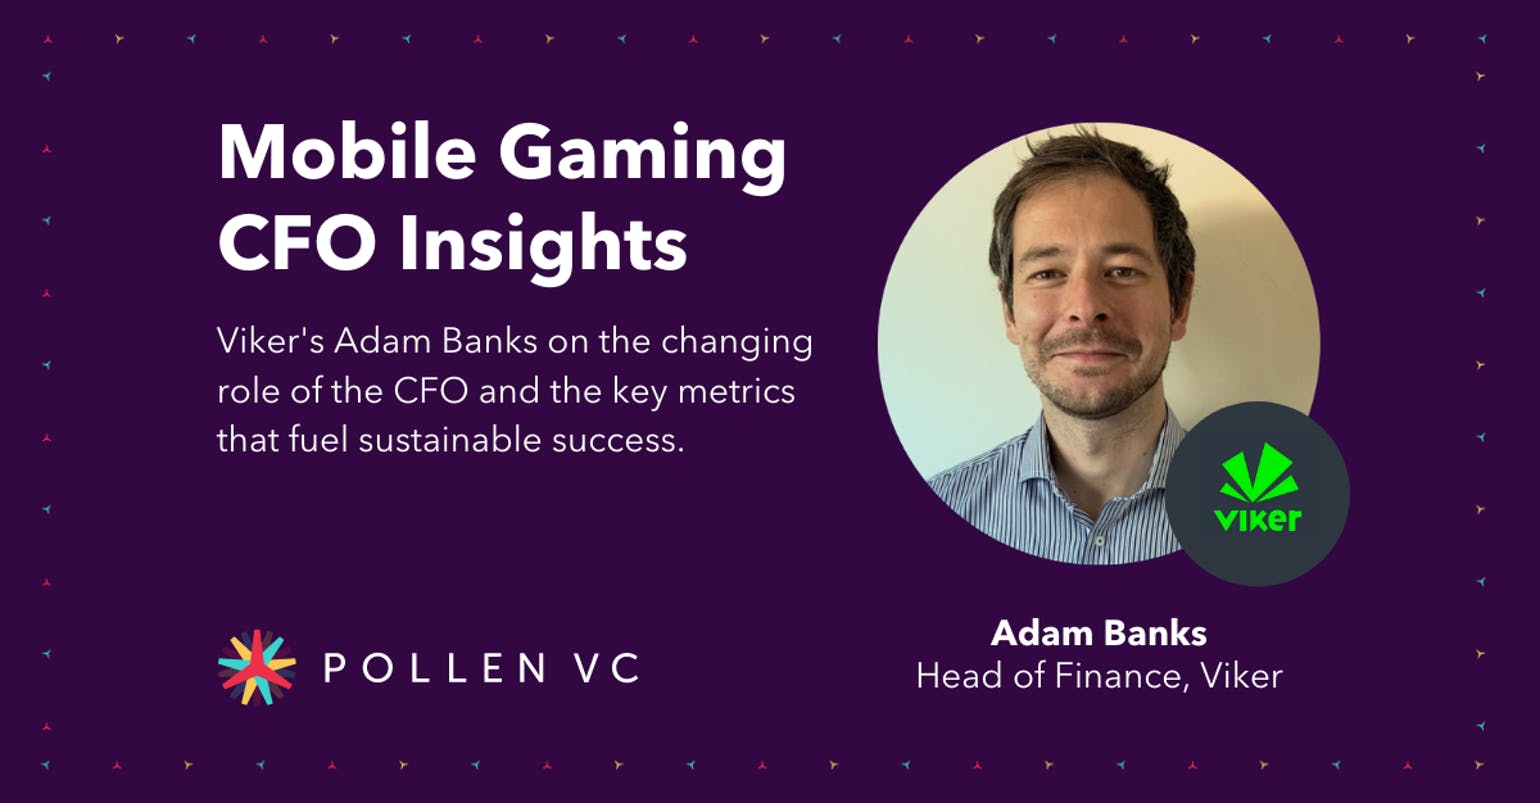 Mobile Gaming CFO Insights